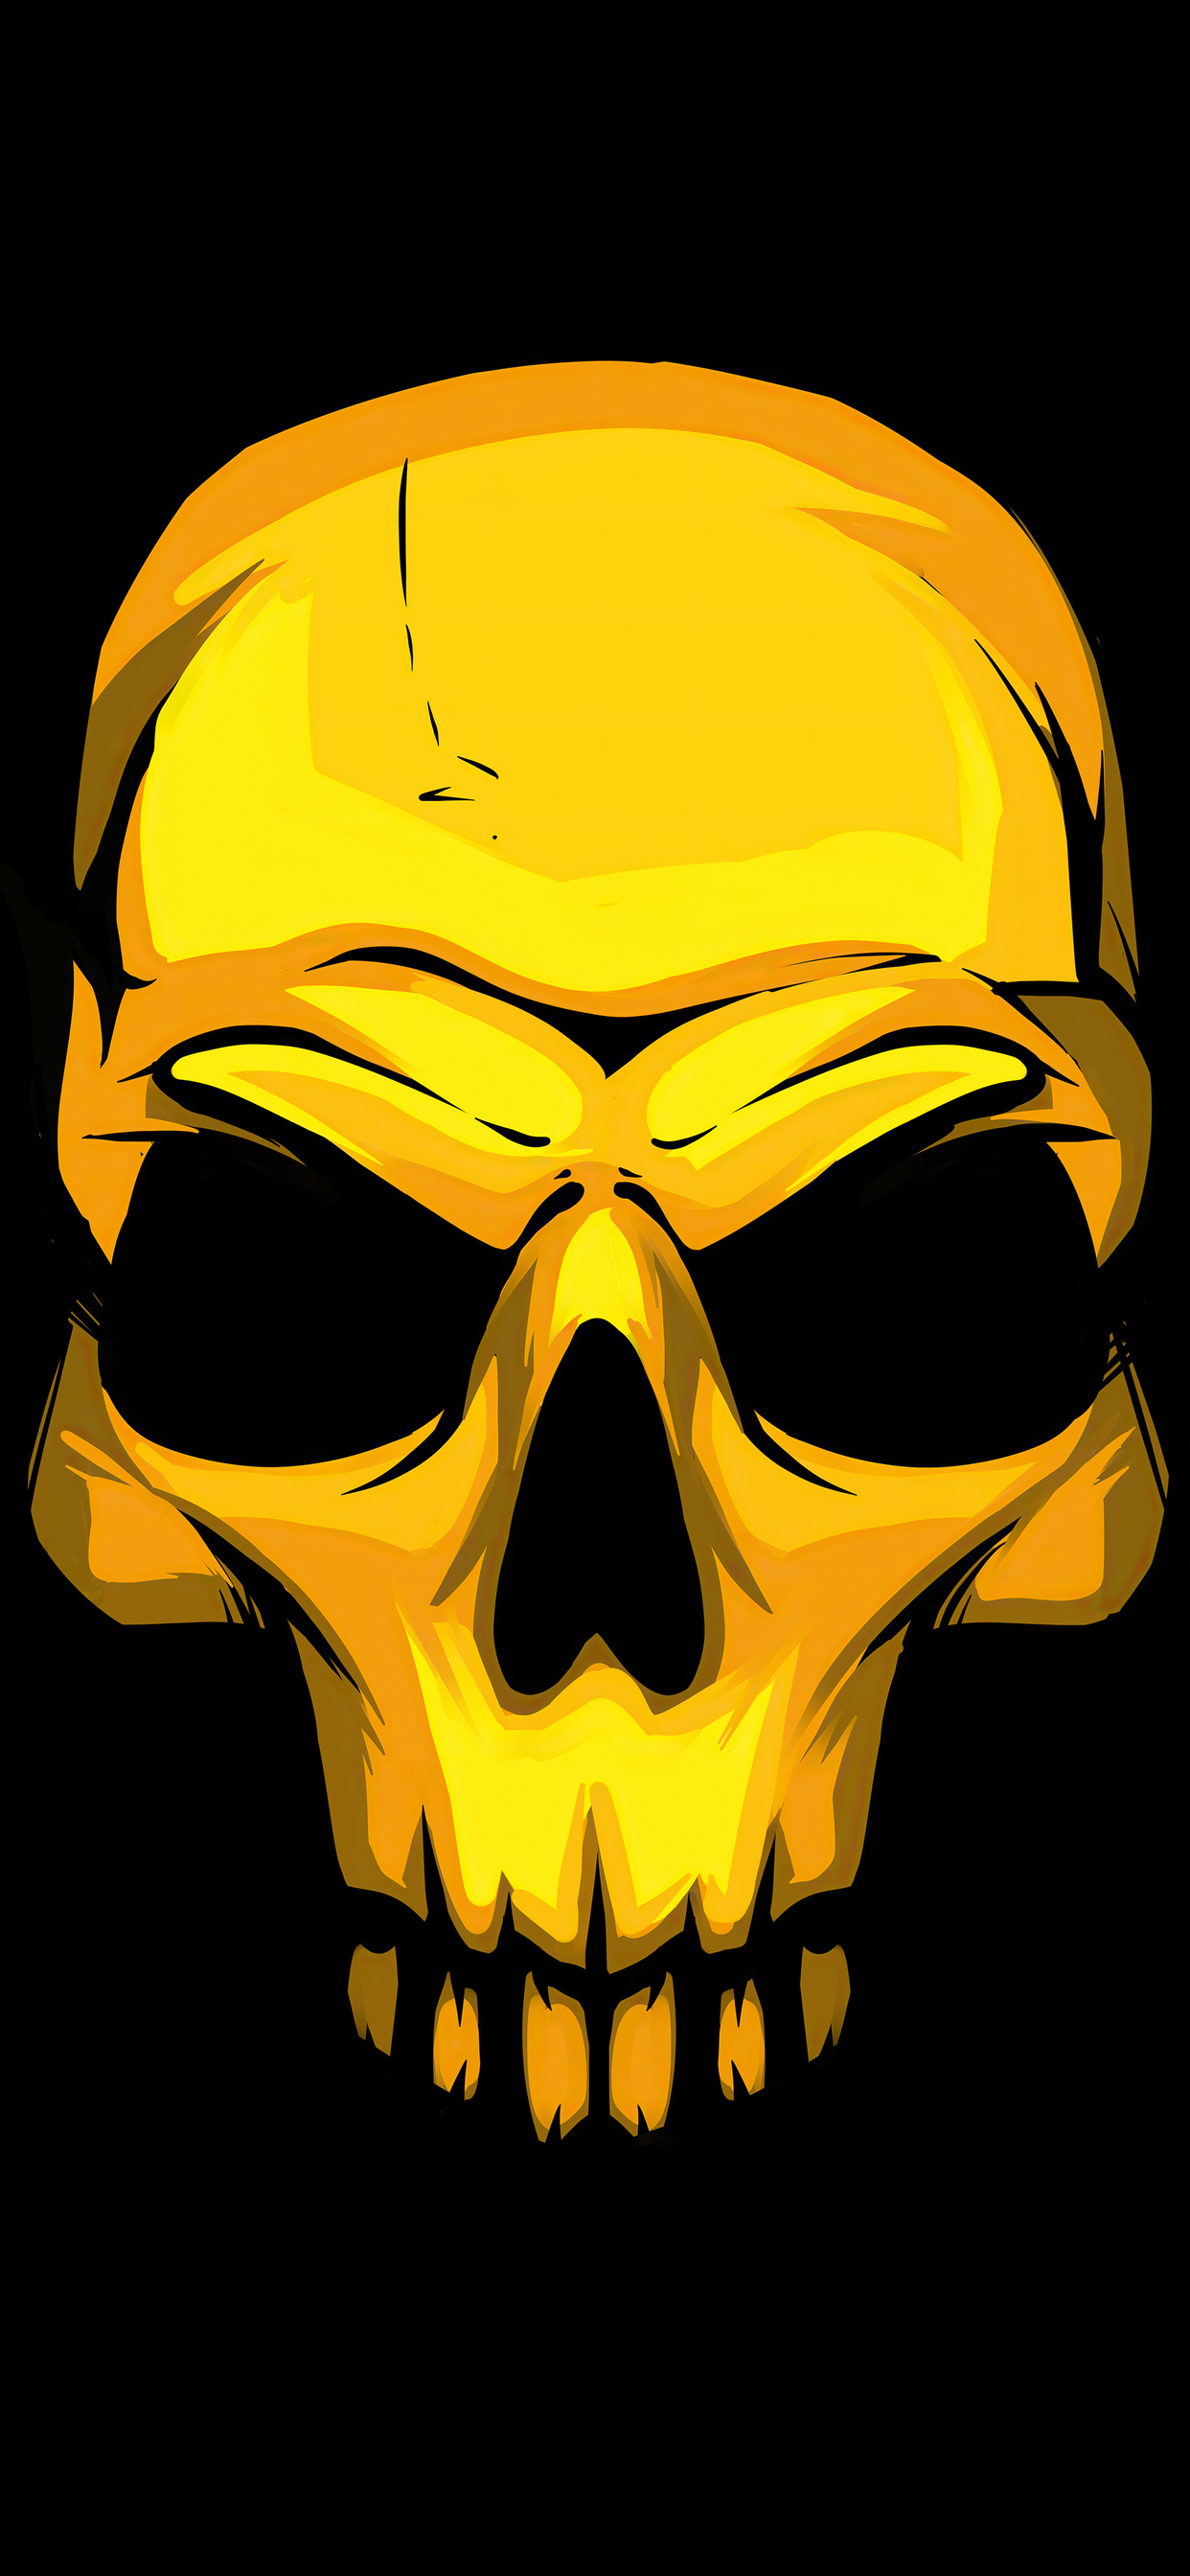 1242x2688 Gold Skull Dark Background 4k Iphone Xs Max Hd 4k Wallpapers Images Backgrounds Photos And Pictures